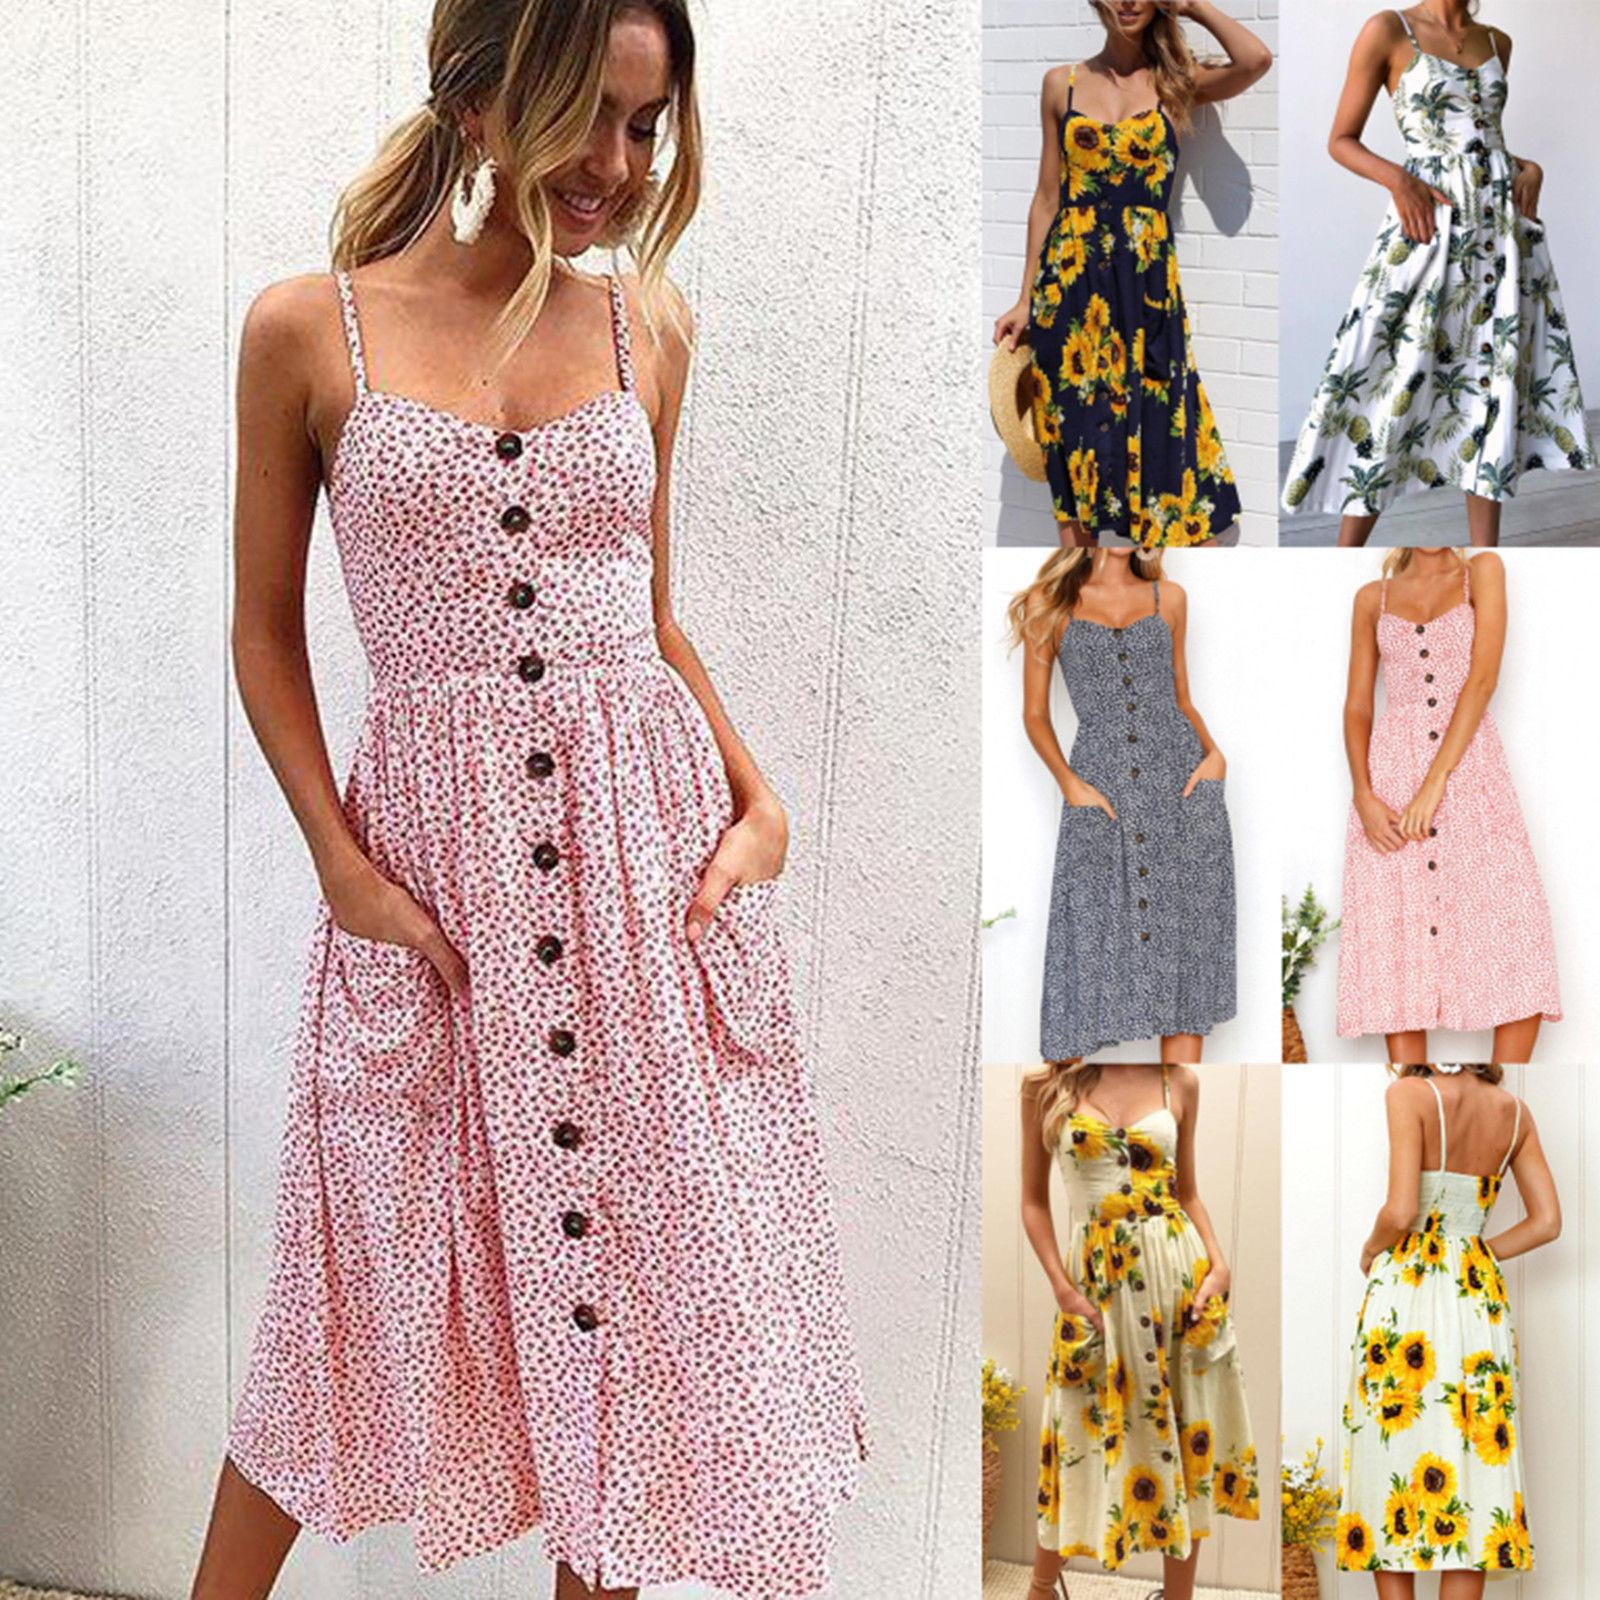 862ea3cef85 Flower Print Draped Dress O Neck Maxi Dress Satin Dresses Dresses For Party  From Alicelife